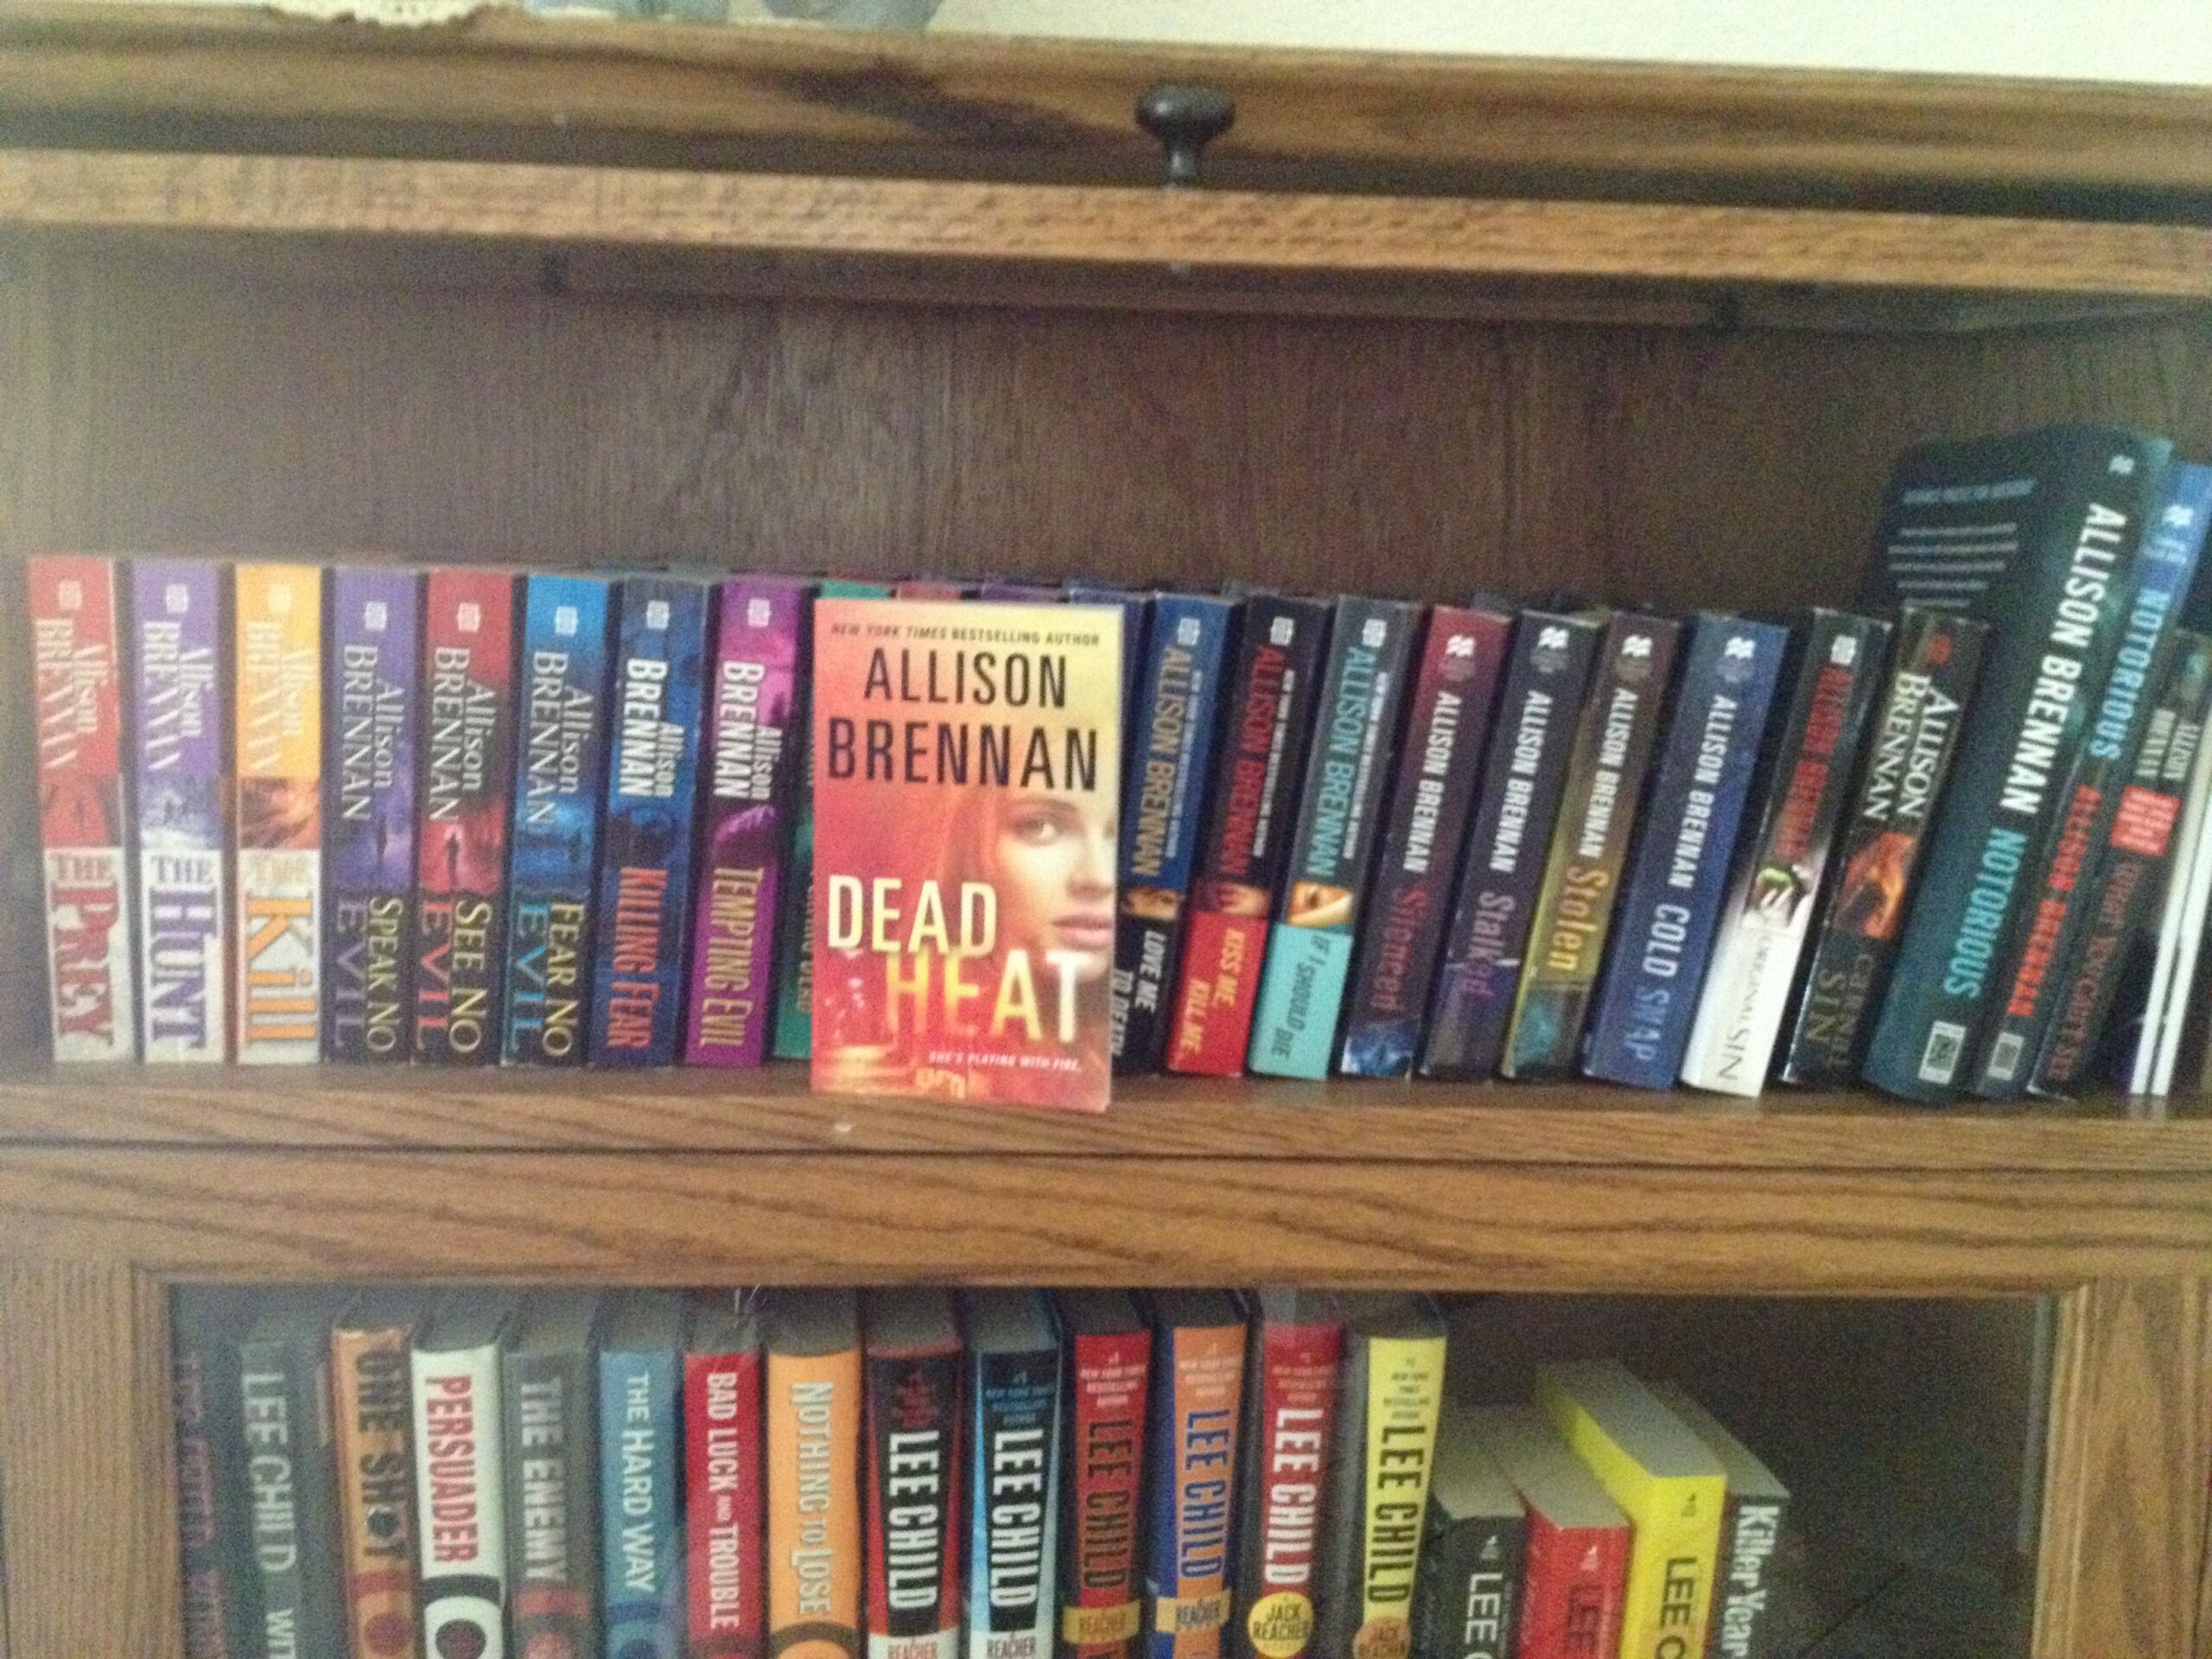 I have my own shelf in a special bookcase! See who's on the shelf below me? My mom's other favorite author!